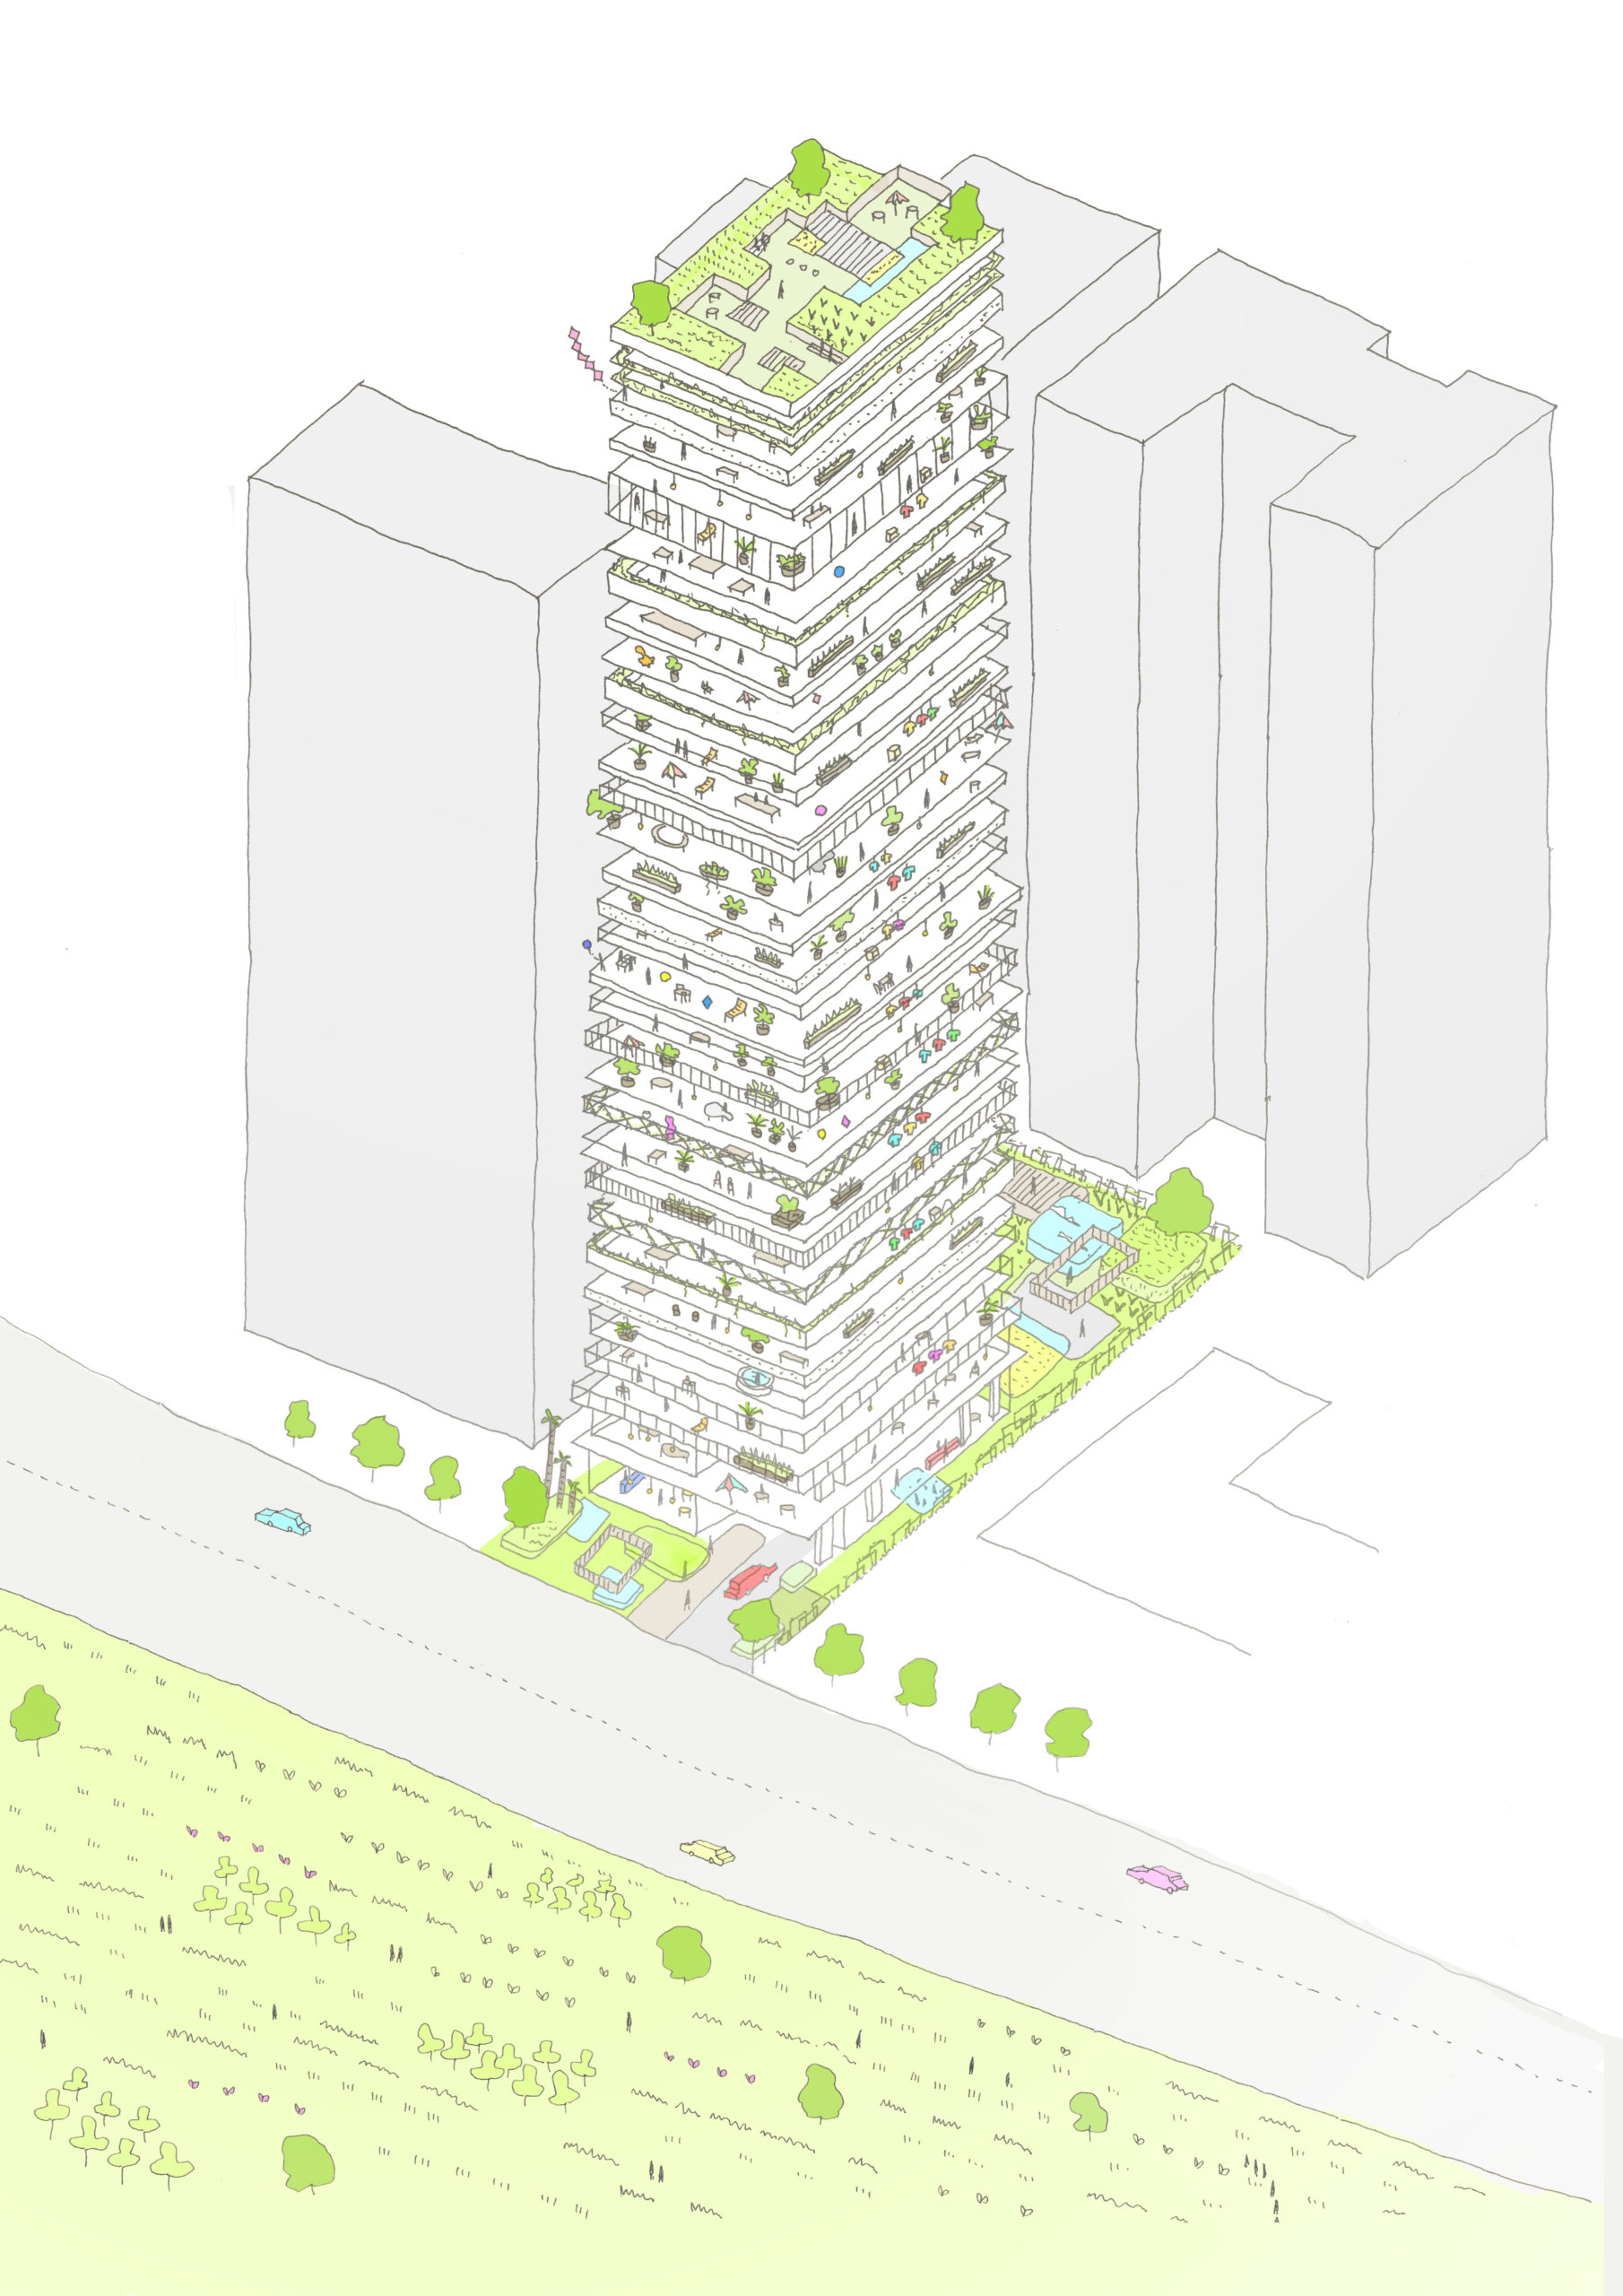 spatial practice architecture office Los Angeles Hong Kong one more residential tower Kaohsiung taiwan concept green living